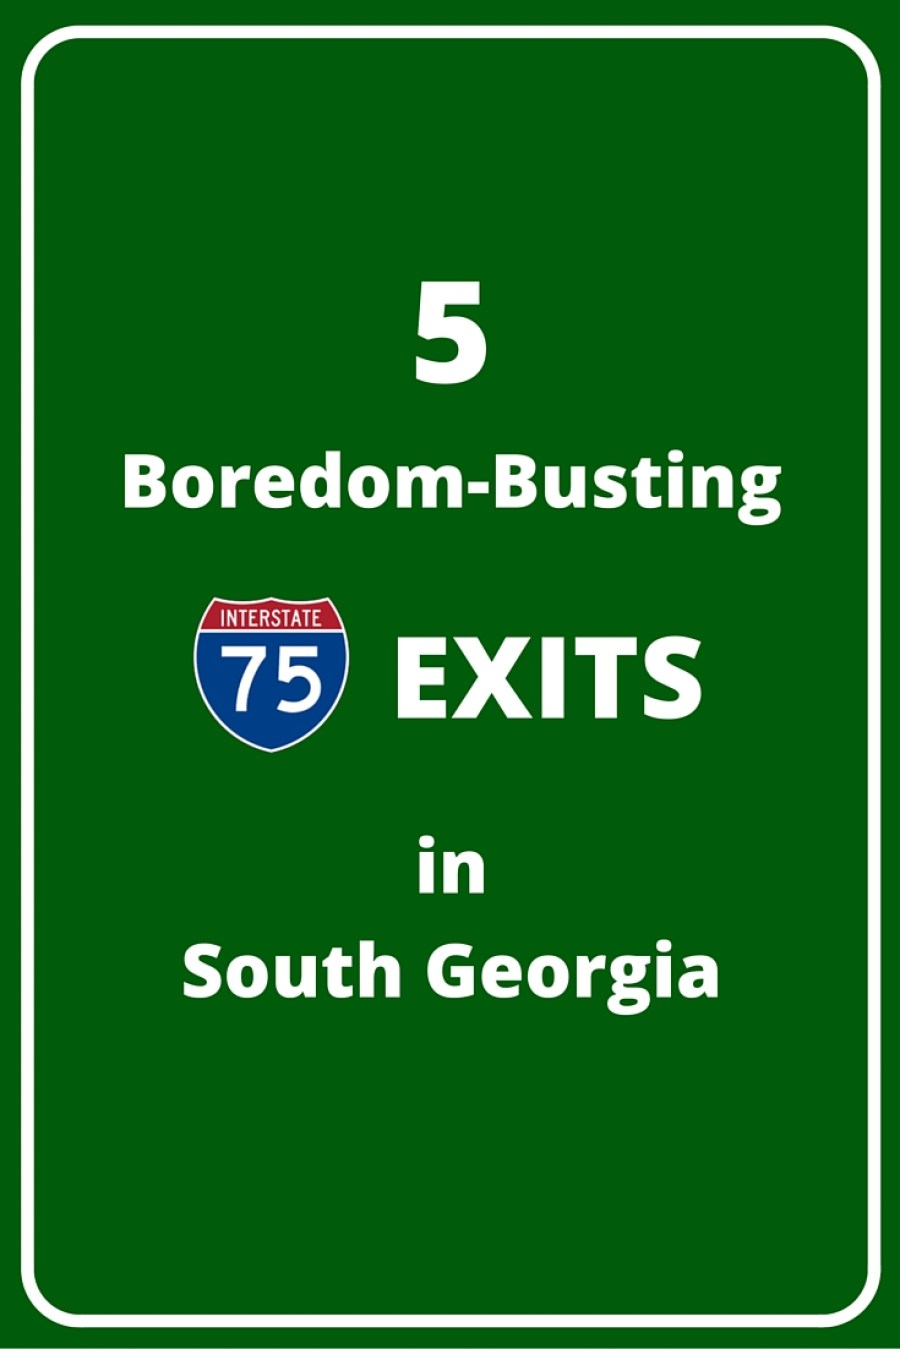 5 2 - 5 Boredom-Busting I-75 Exits in South Georgia